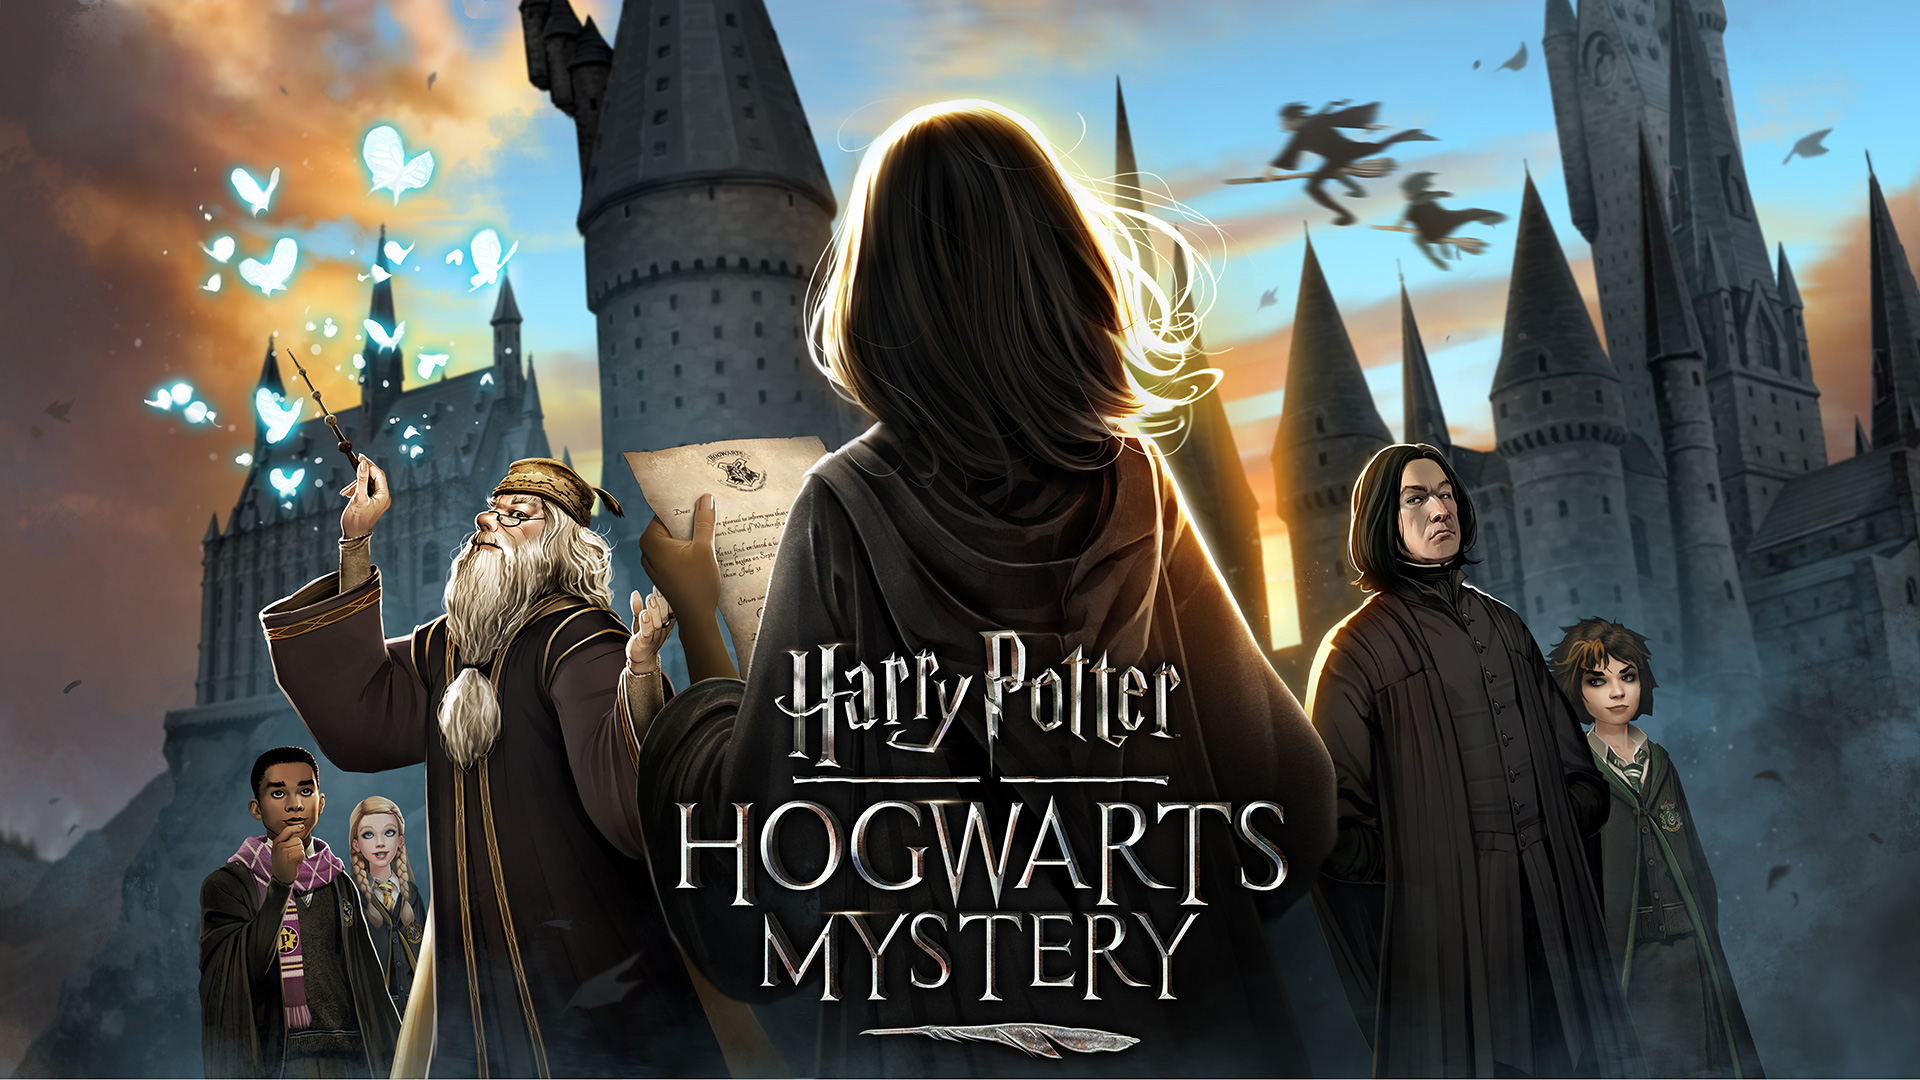 Harry Potter: Hogwarts Mystery Facebook